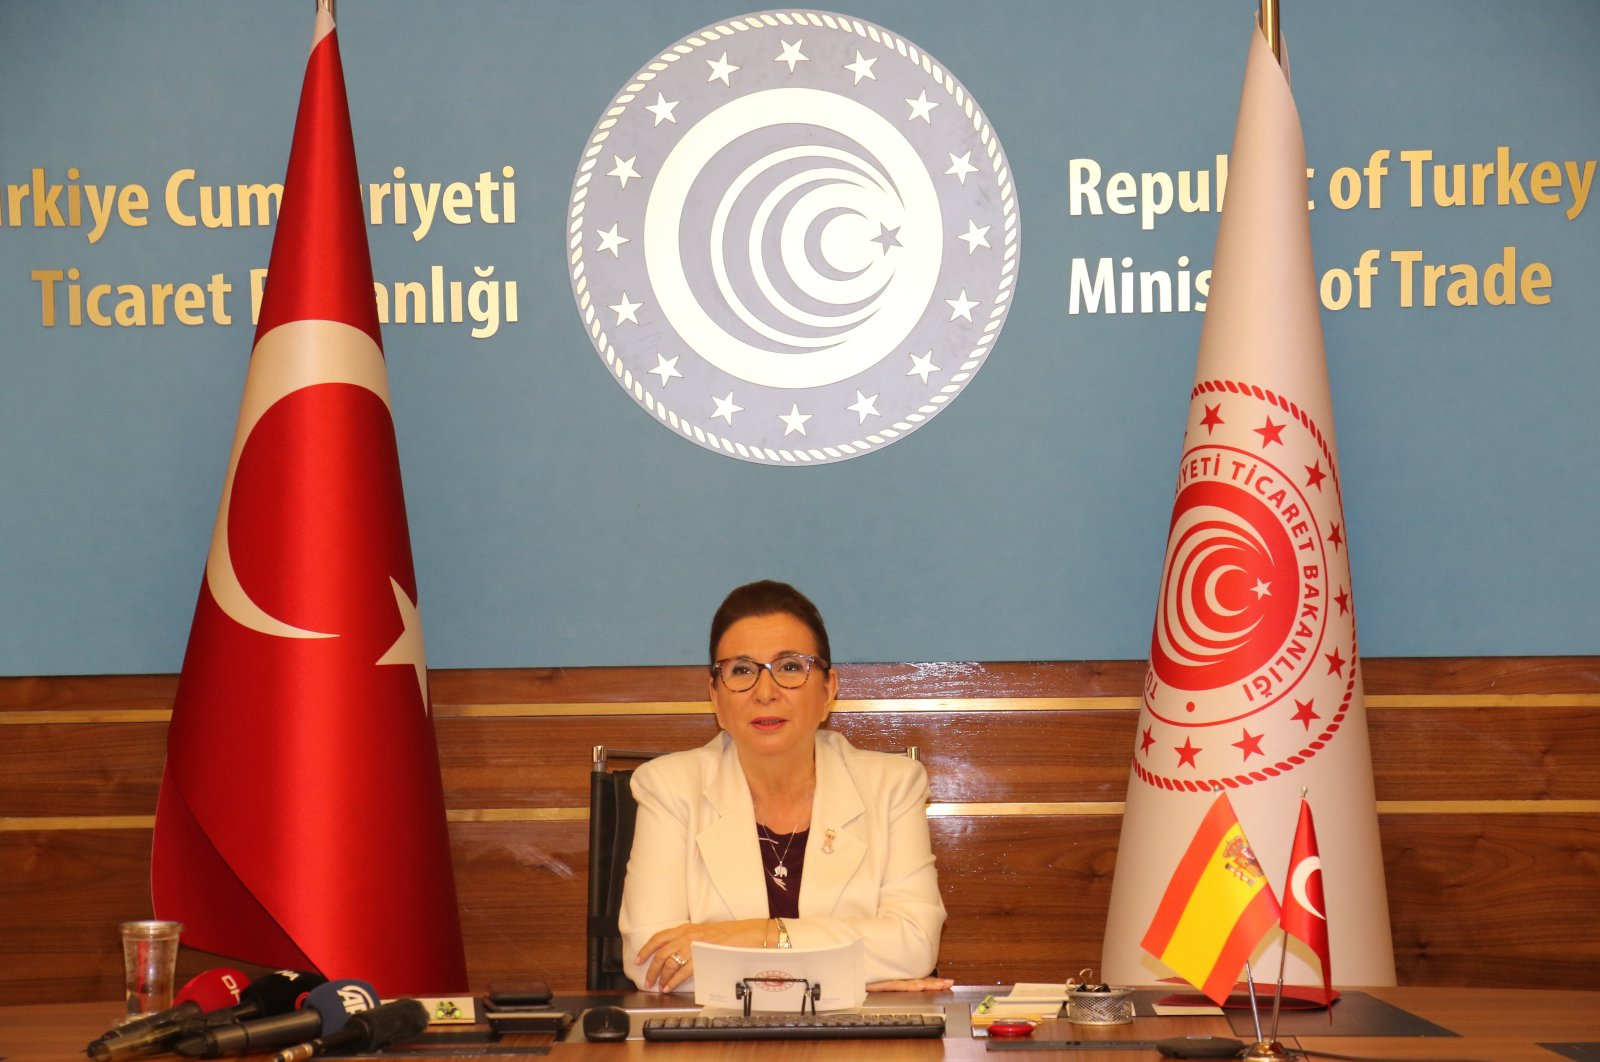 Trade Minister Ruhsar Pekcan speaks at a virtual meeting of the Joint Economic and Trade Committee in Ankara, July 23, 2020. (IHA Photo)